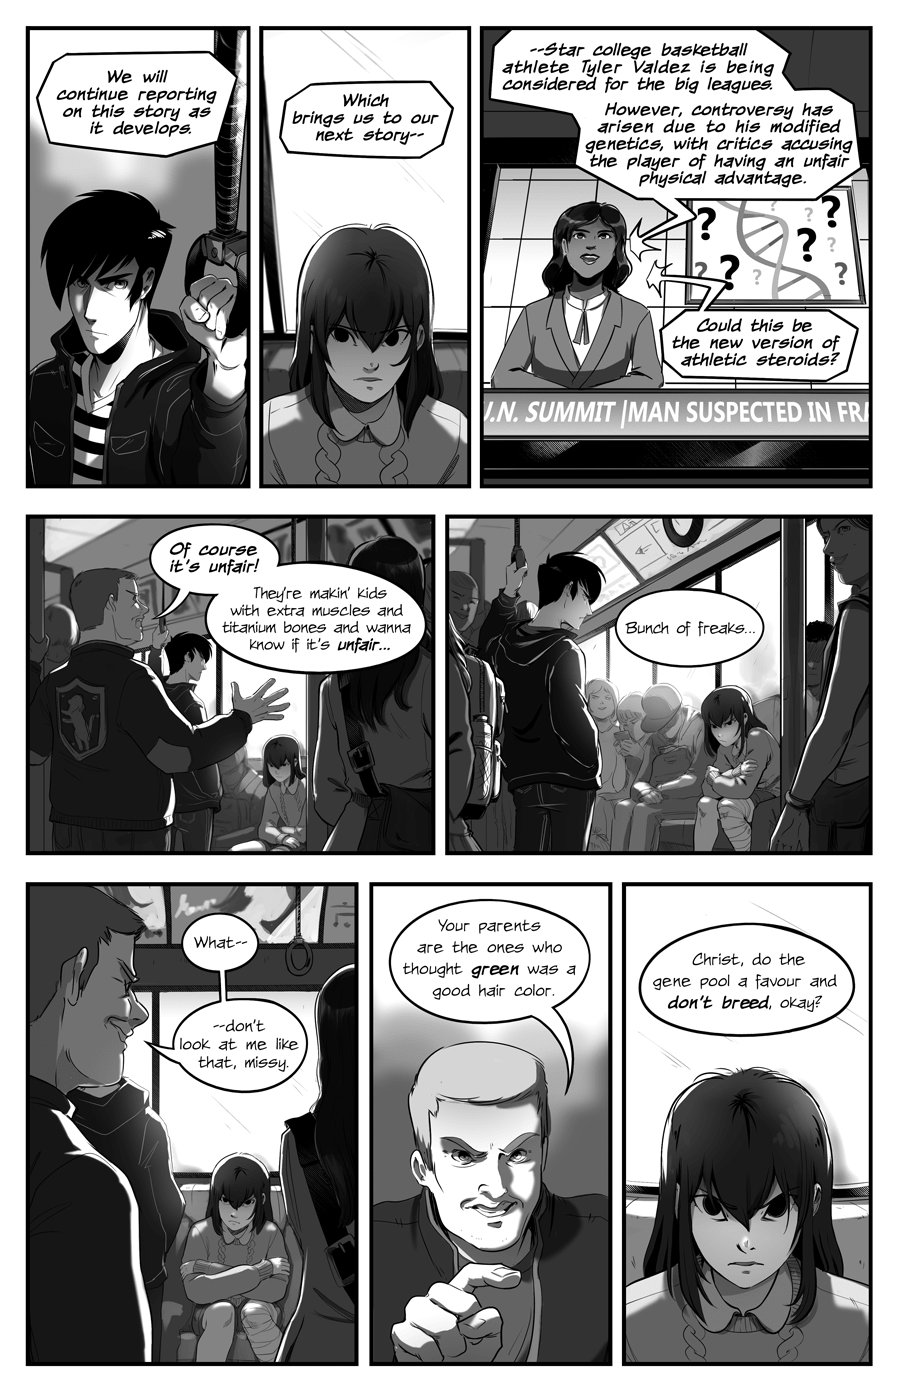 Centralia 2050 chapter 5 page 27